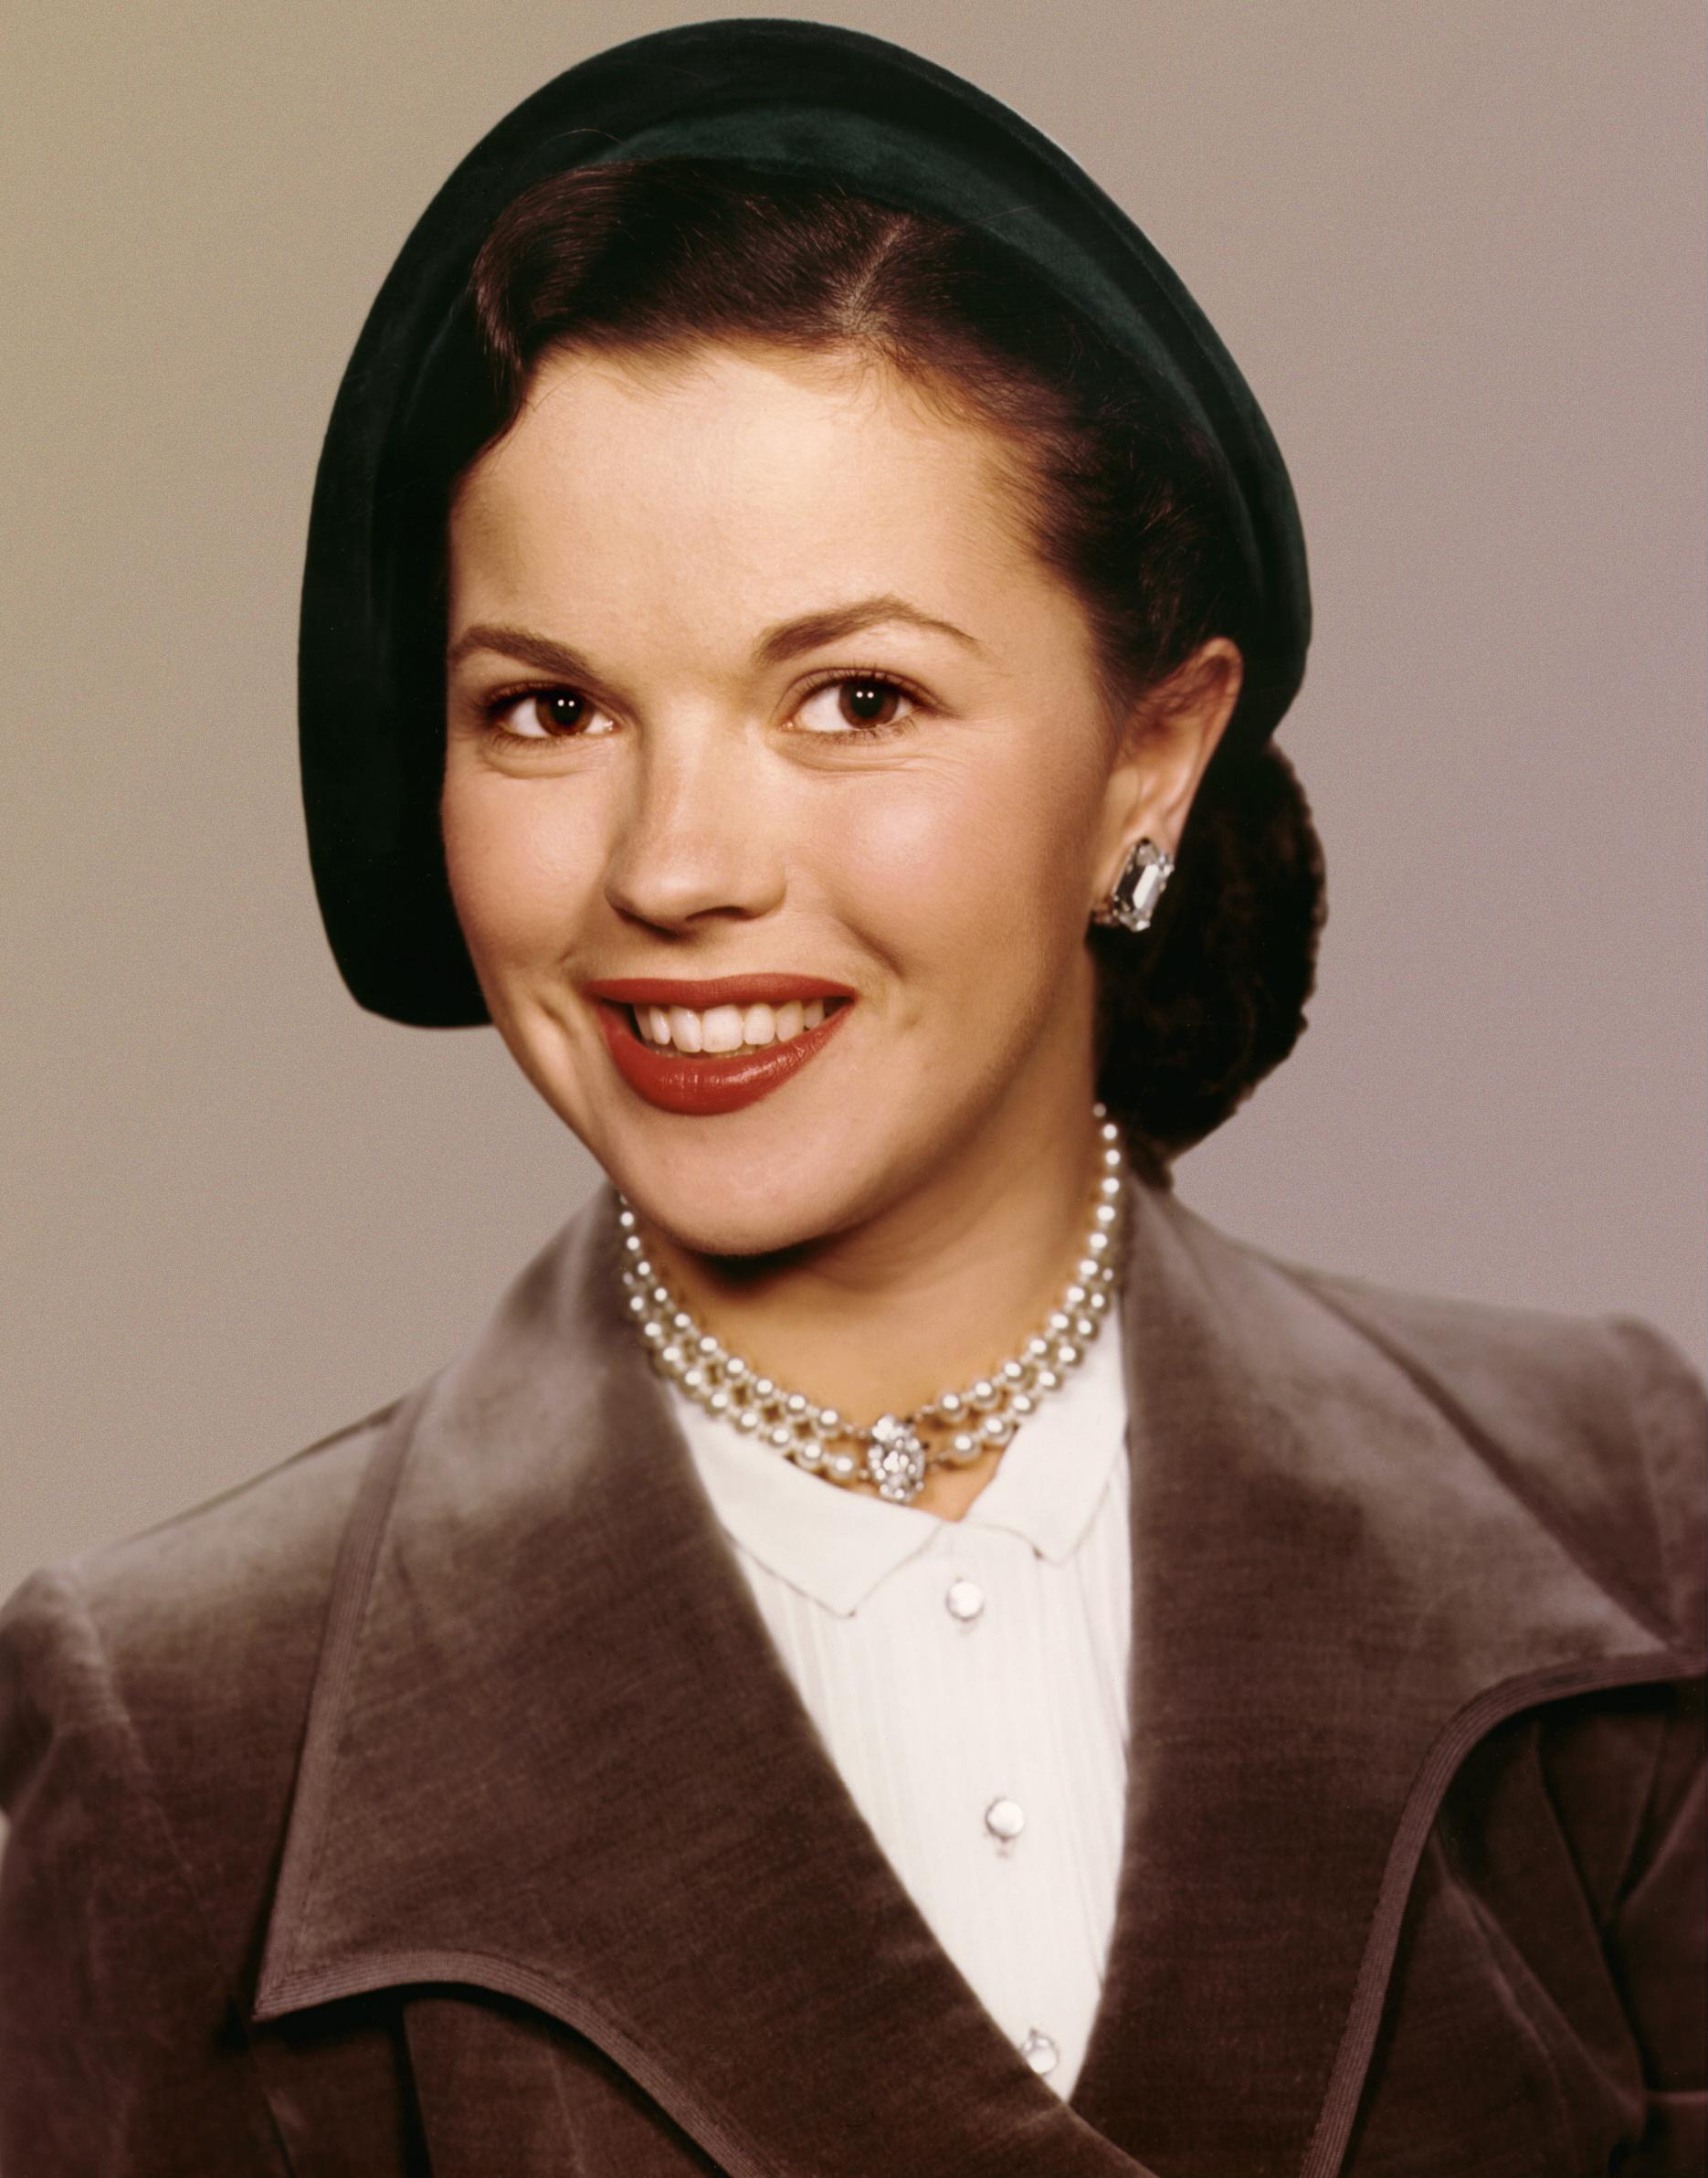 Shirley temple as a teen